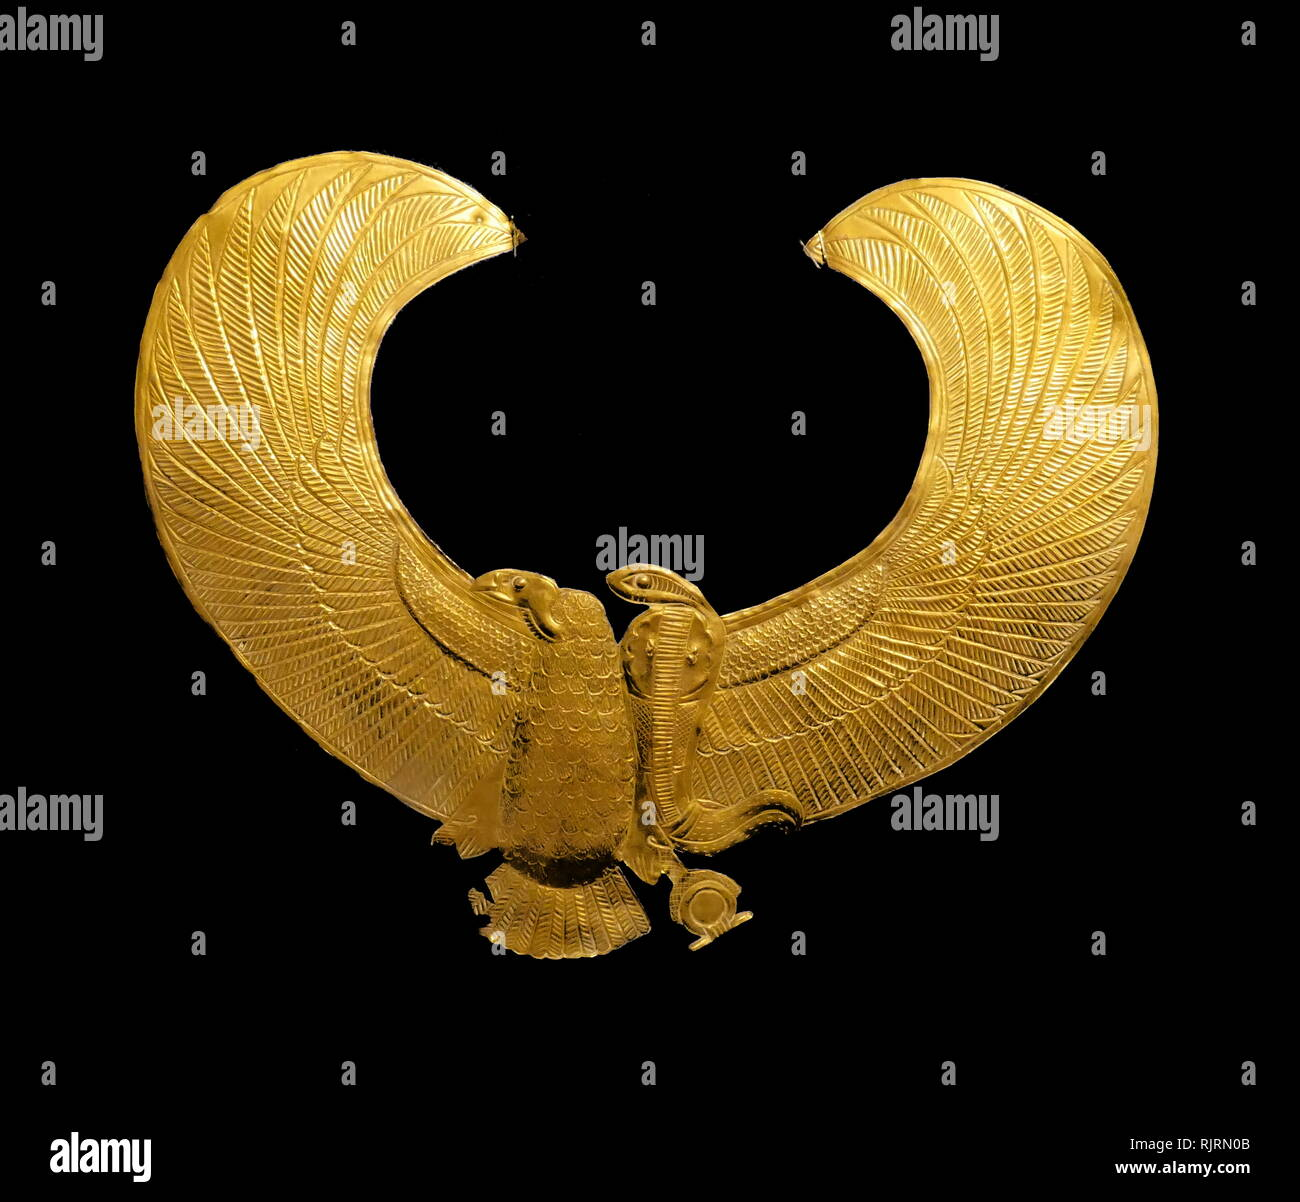 Replica gold pectoral in the shape of a vulture; from the Tomb of King Tutankhamen. Howard Carter (1874 - 1939); British archaeologist and Egyptologist who became world-famous after discovering the intact tomb (designated KV62) of the 18th Dynasty Pharaoh, Tutankhamen (colloquially known as 'King Tut' and 'the boy king'), in November 1922. - Stock Image